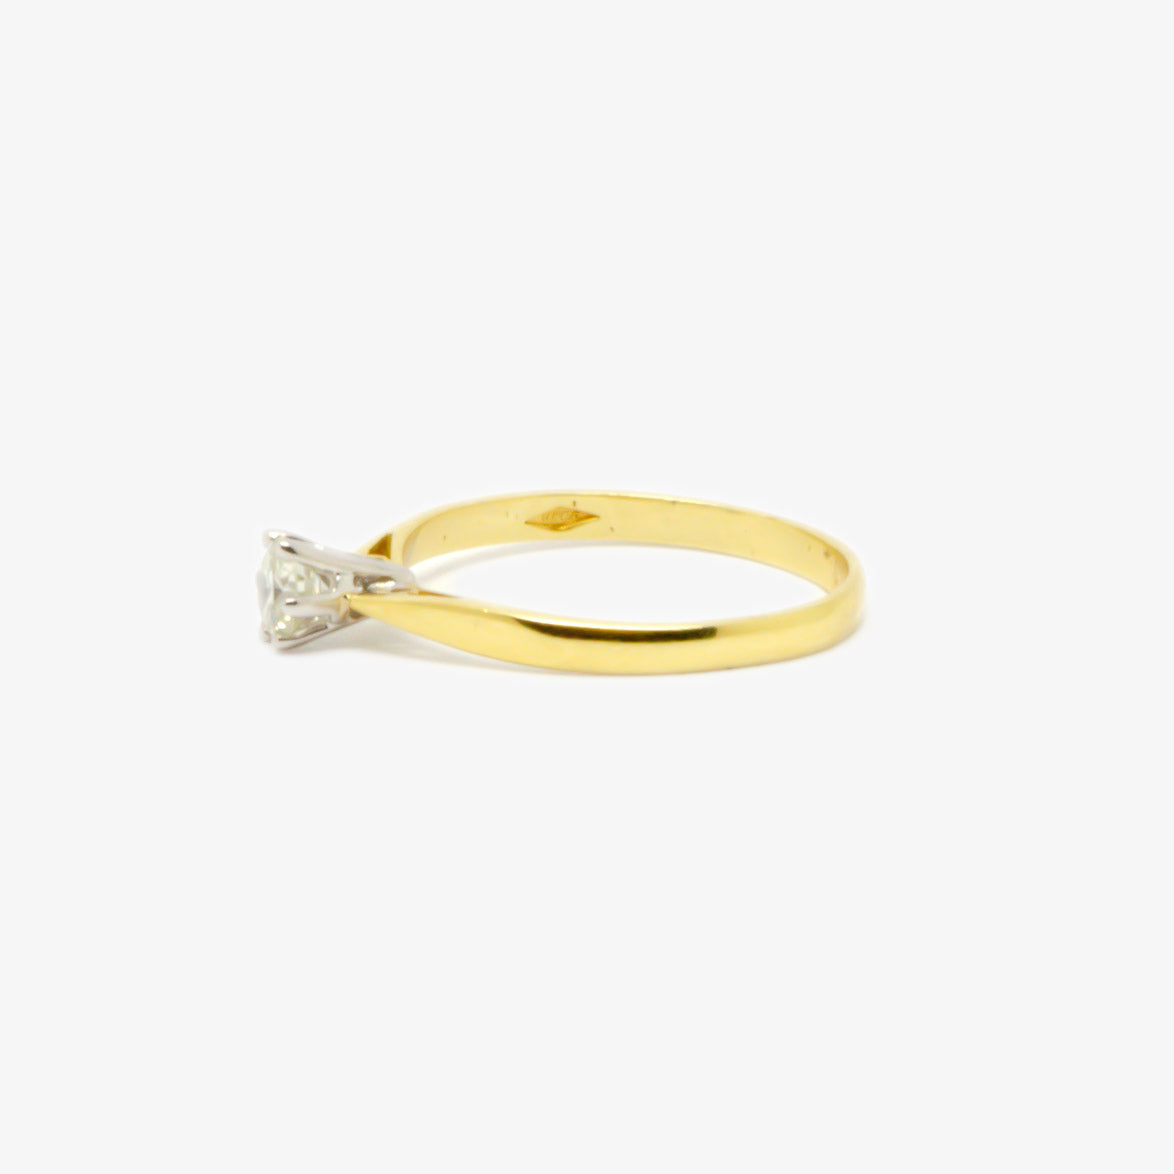 0.28 Carat Diamond Solitaire Ring